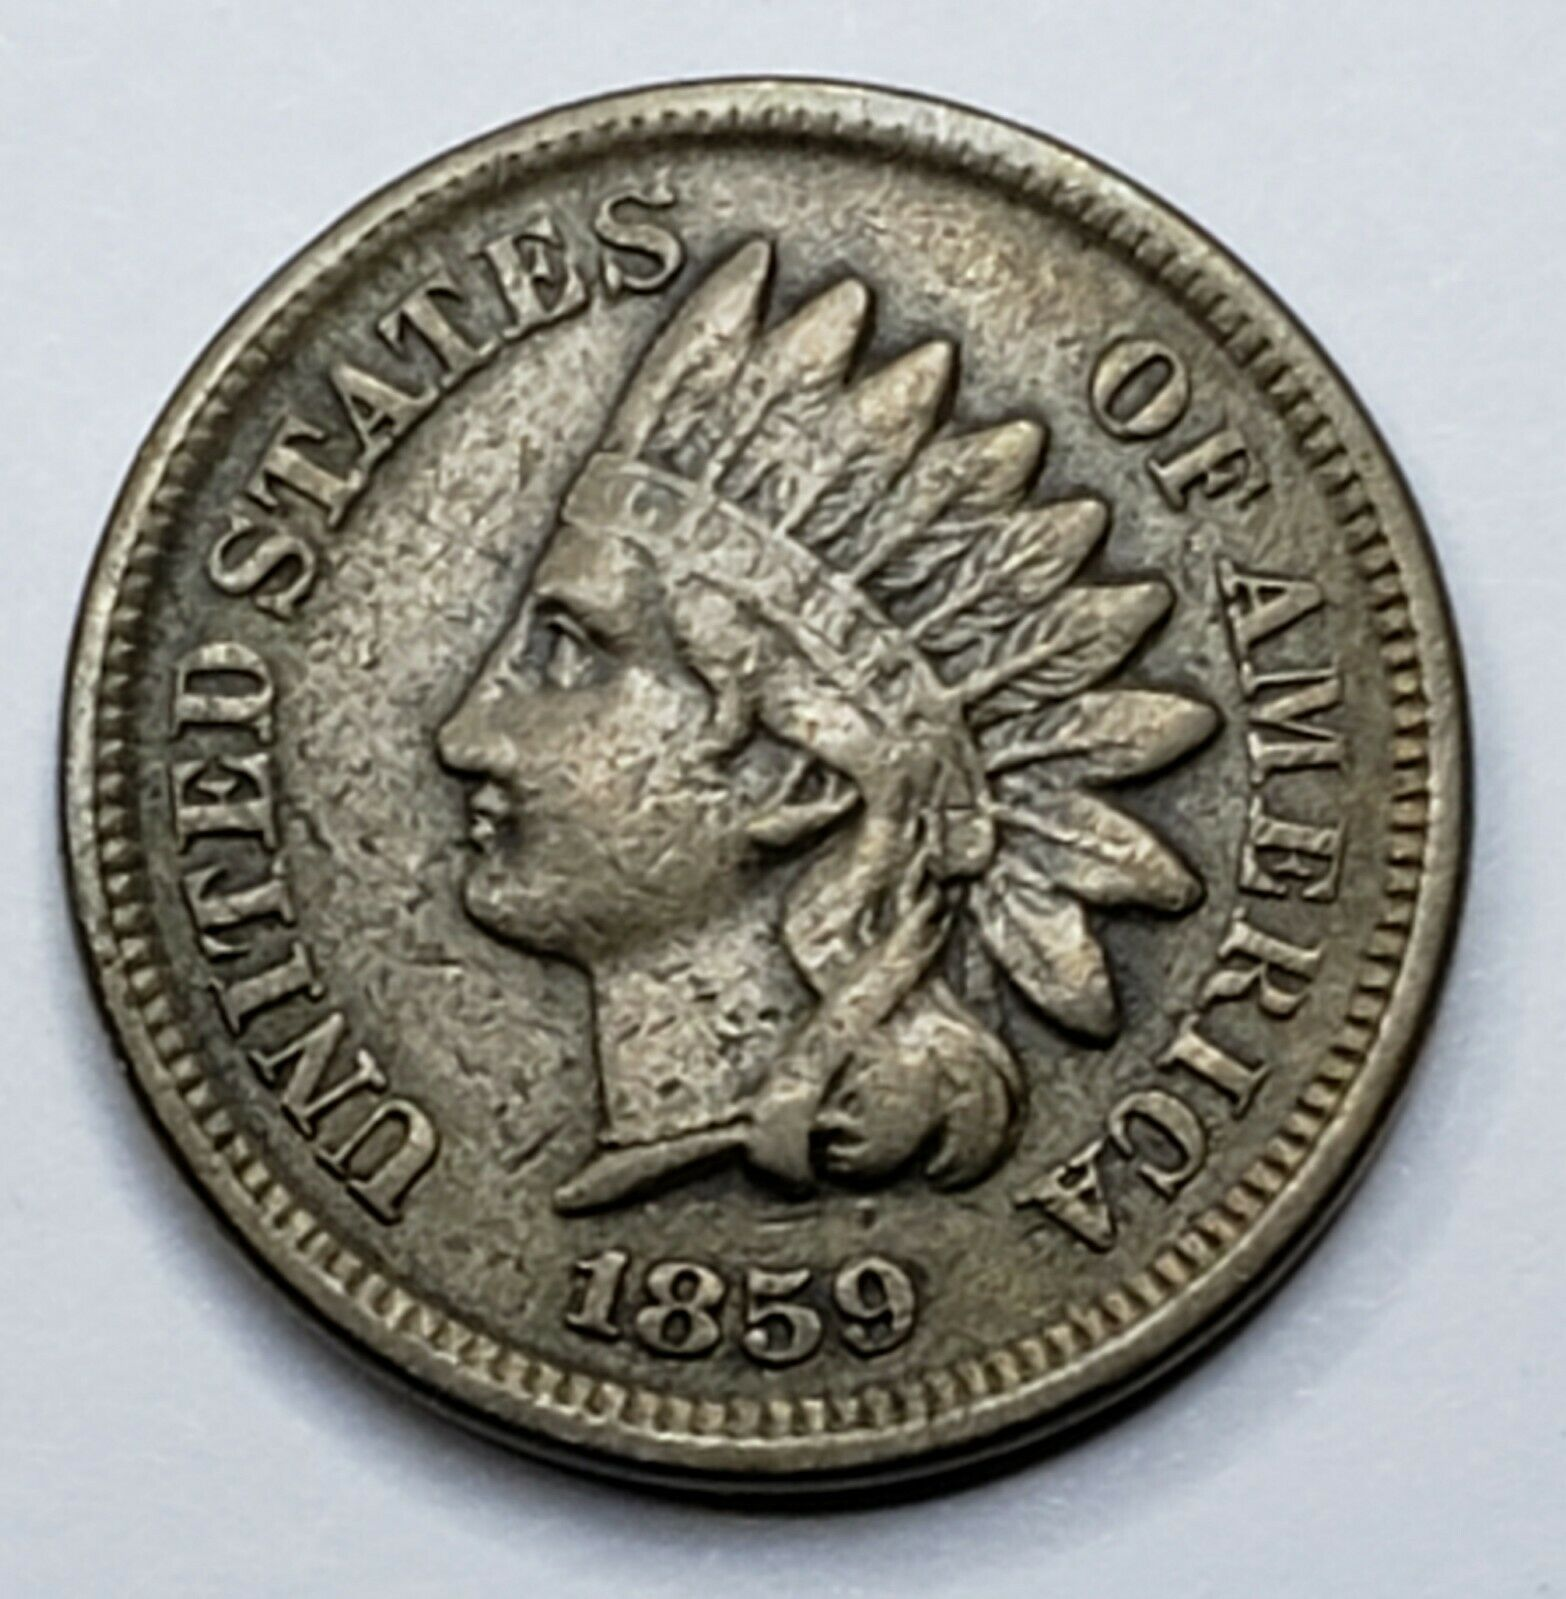 1859 Indian Head Cent Penny Coin Lot 519-114